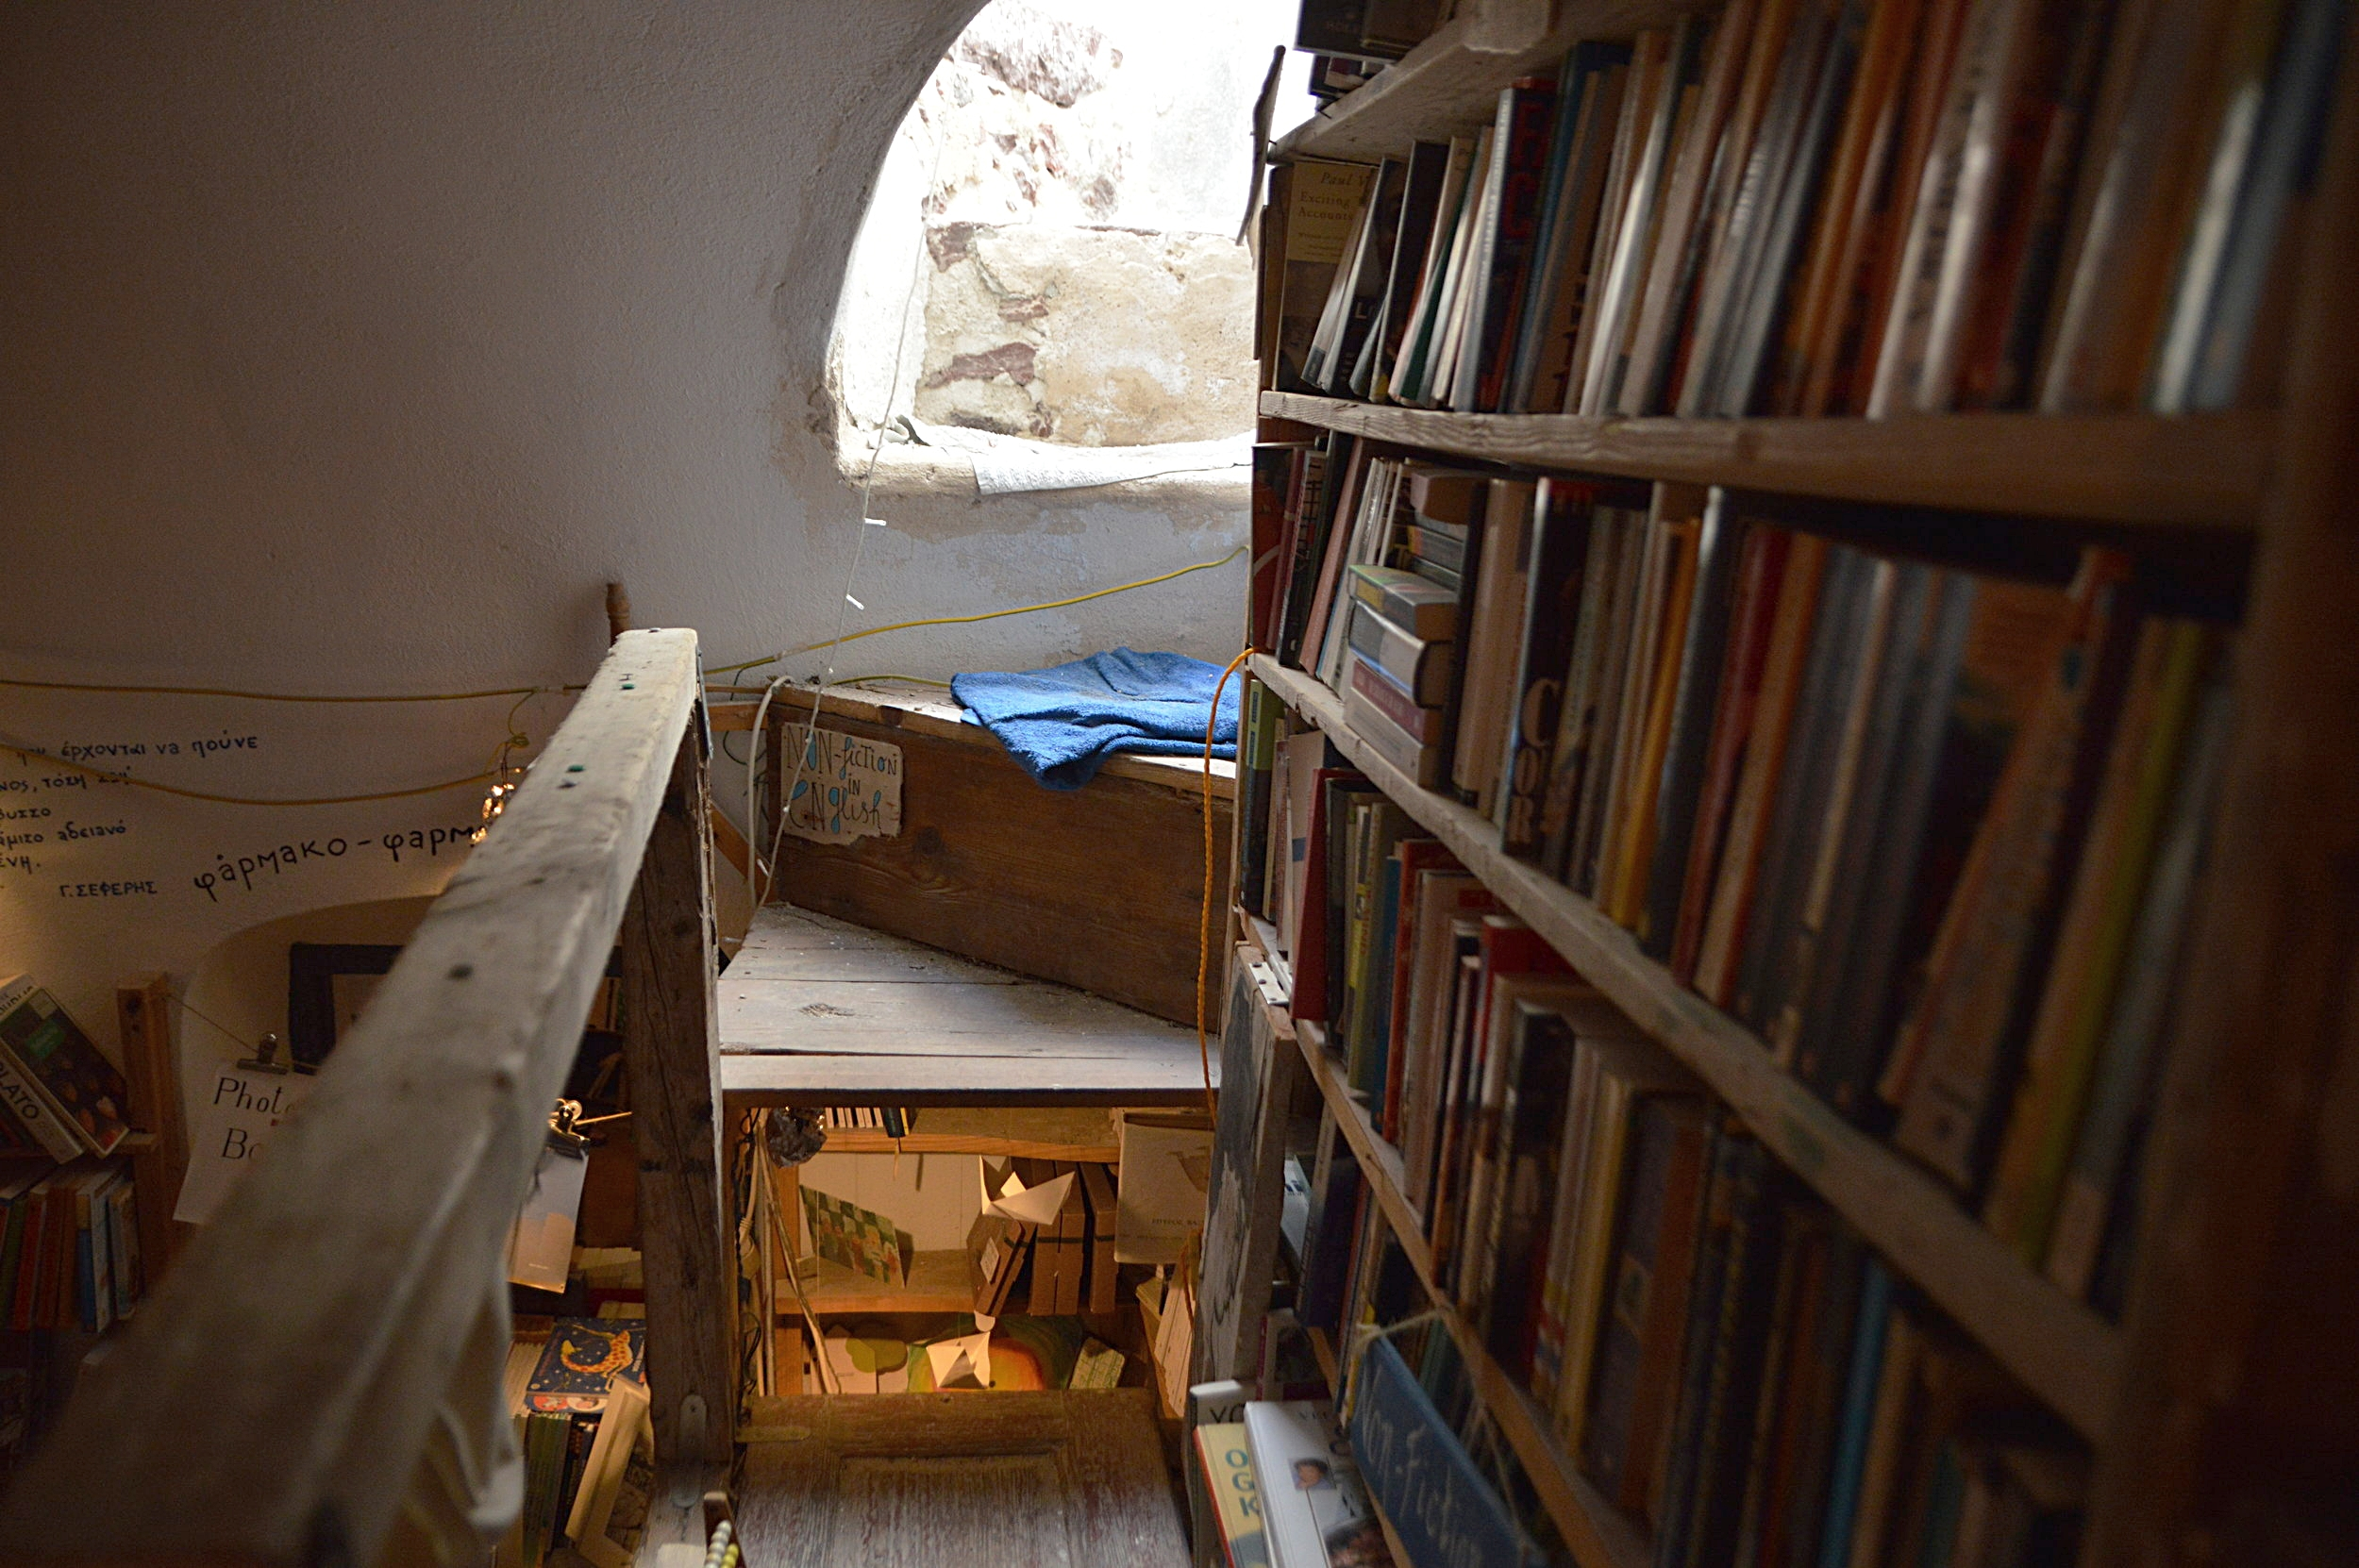 In this Santorini Bookshop, you can literally climb in and out through the roof.